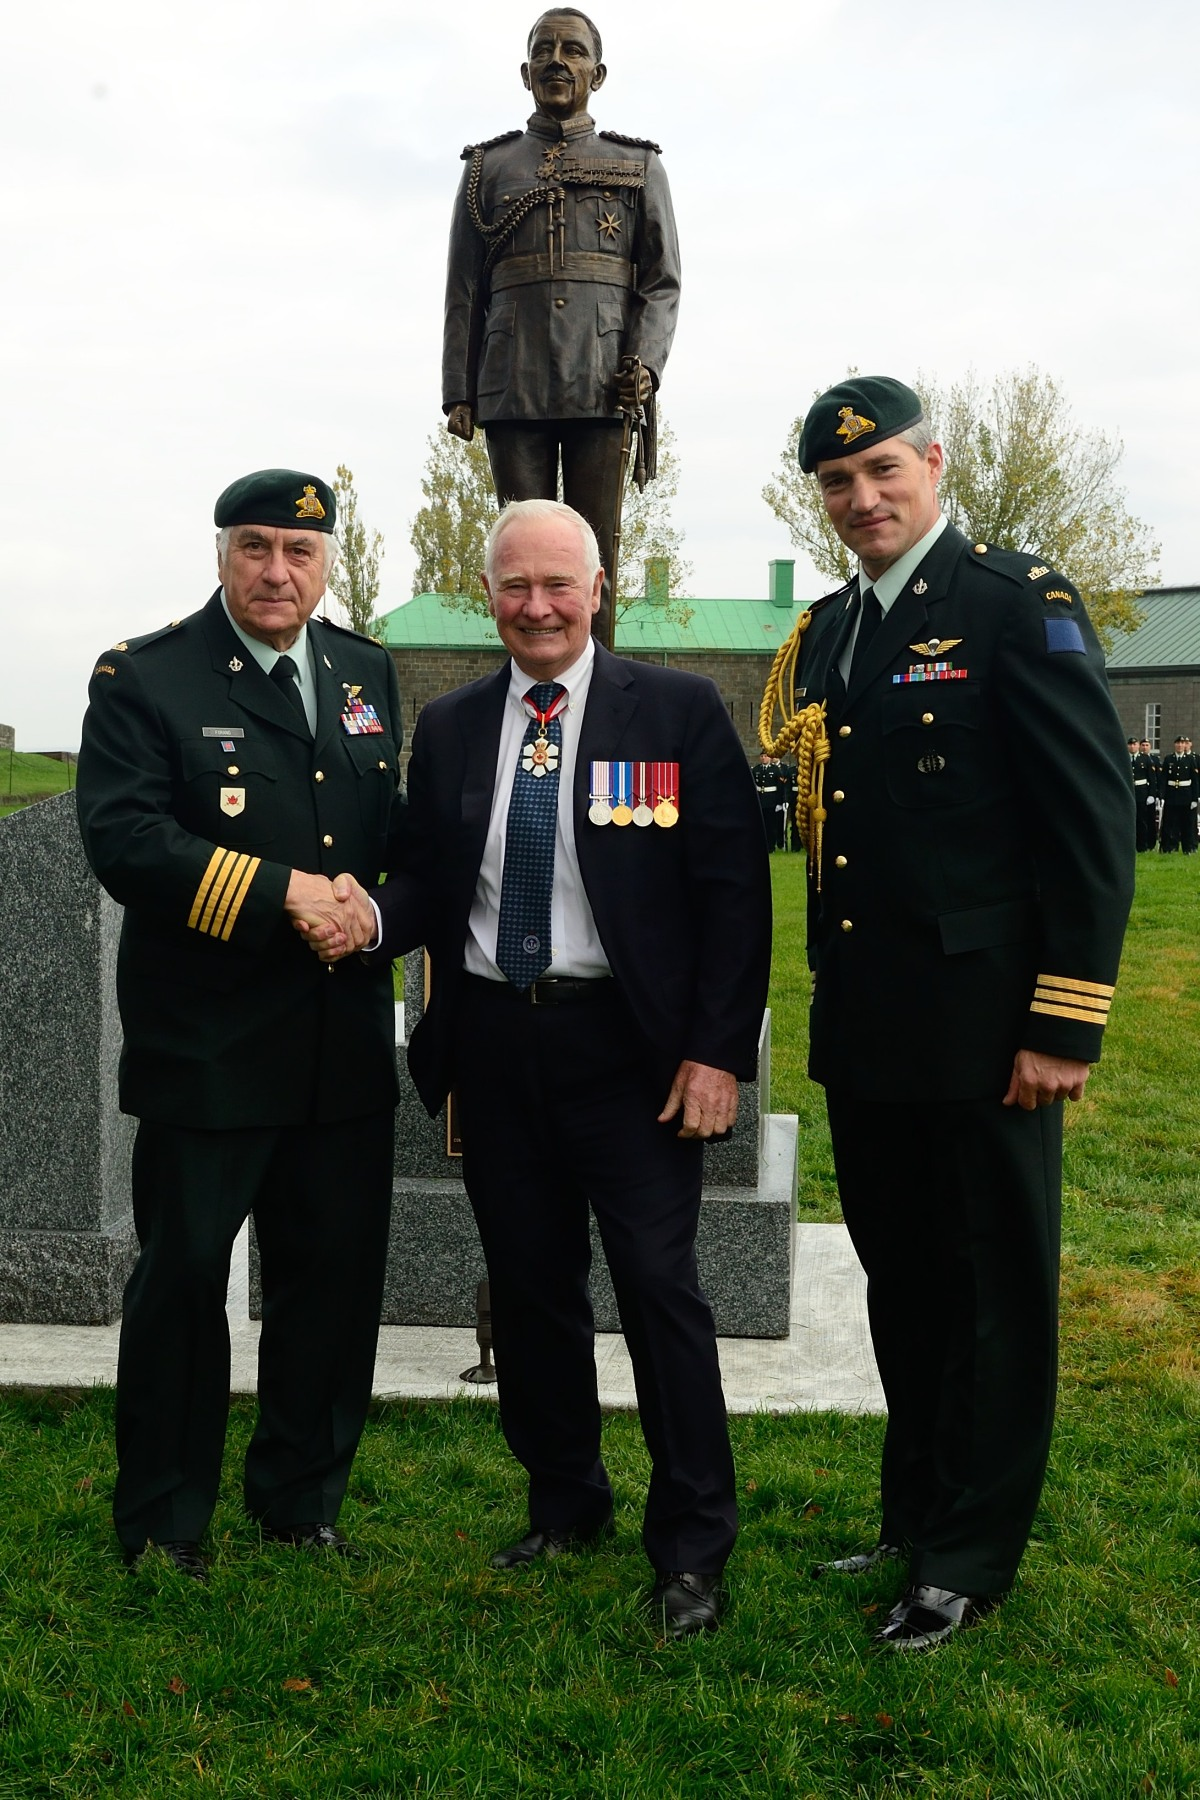 The Governor General is pictured alongside Major-General Alain Forand (retired), Colonel of the Royal 22e Régiment (left) and Lieutenant-Colonel Gervais Carpentier, Commanding Officer of the 2nd Batallion of the Royal 22e Régiment (right).